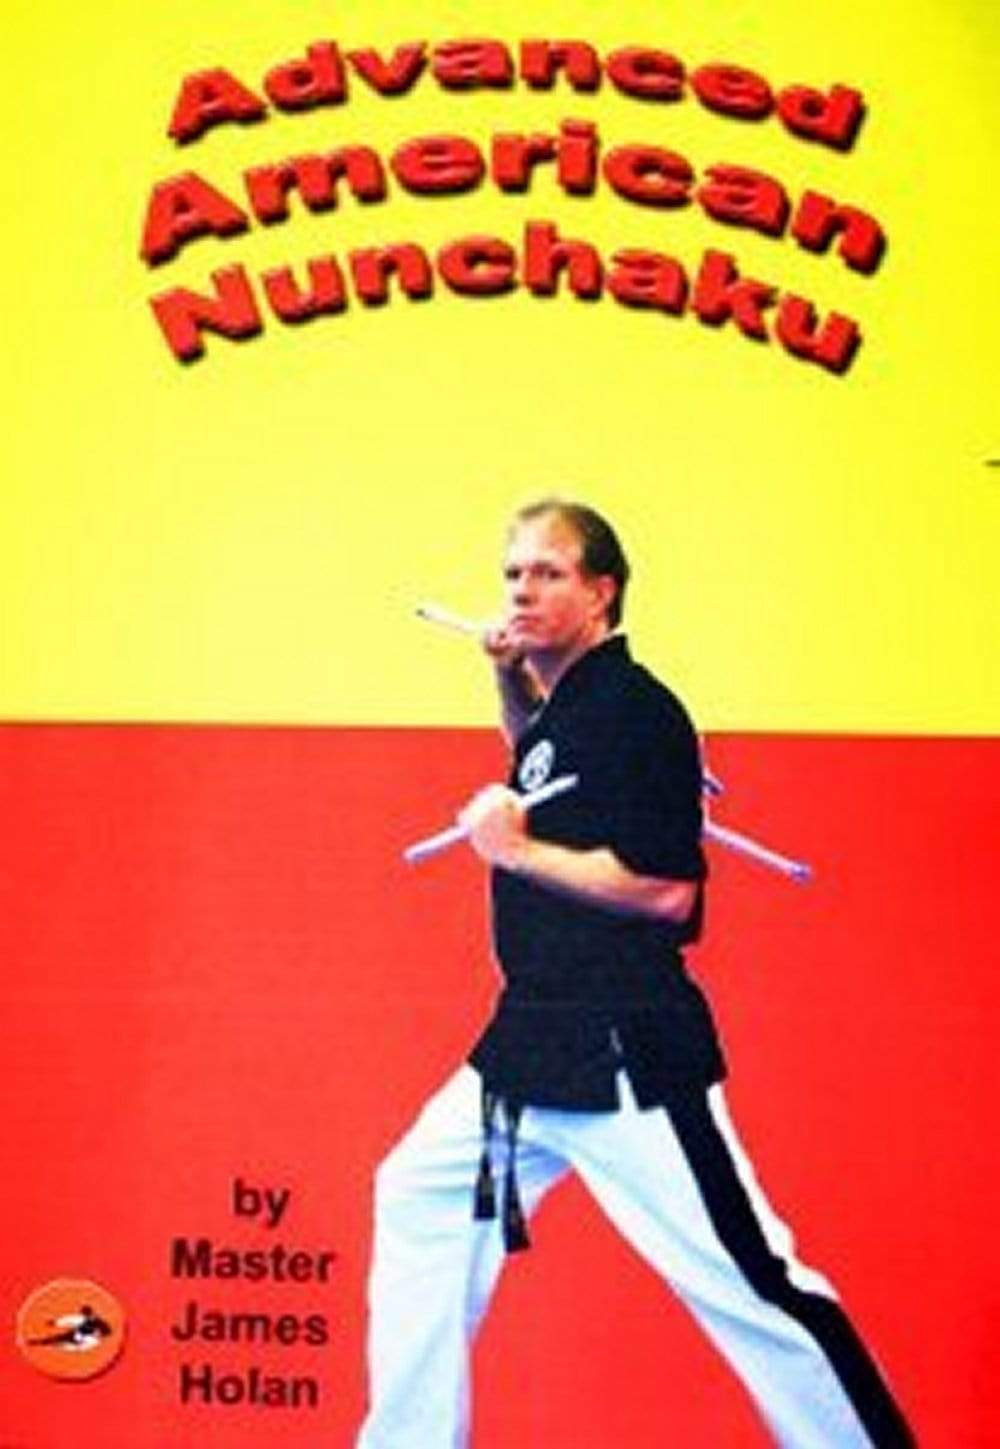 Double Nunchaku Forms Kata Training DVD  Video karate